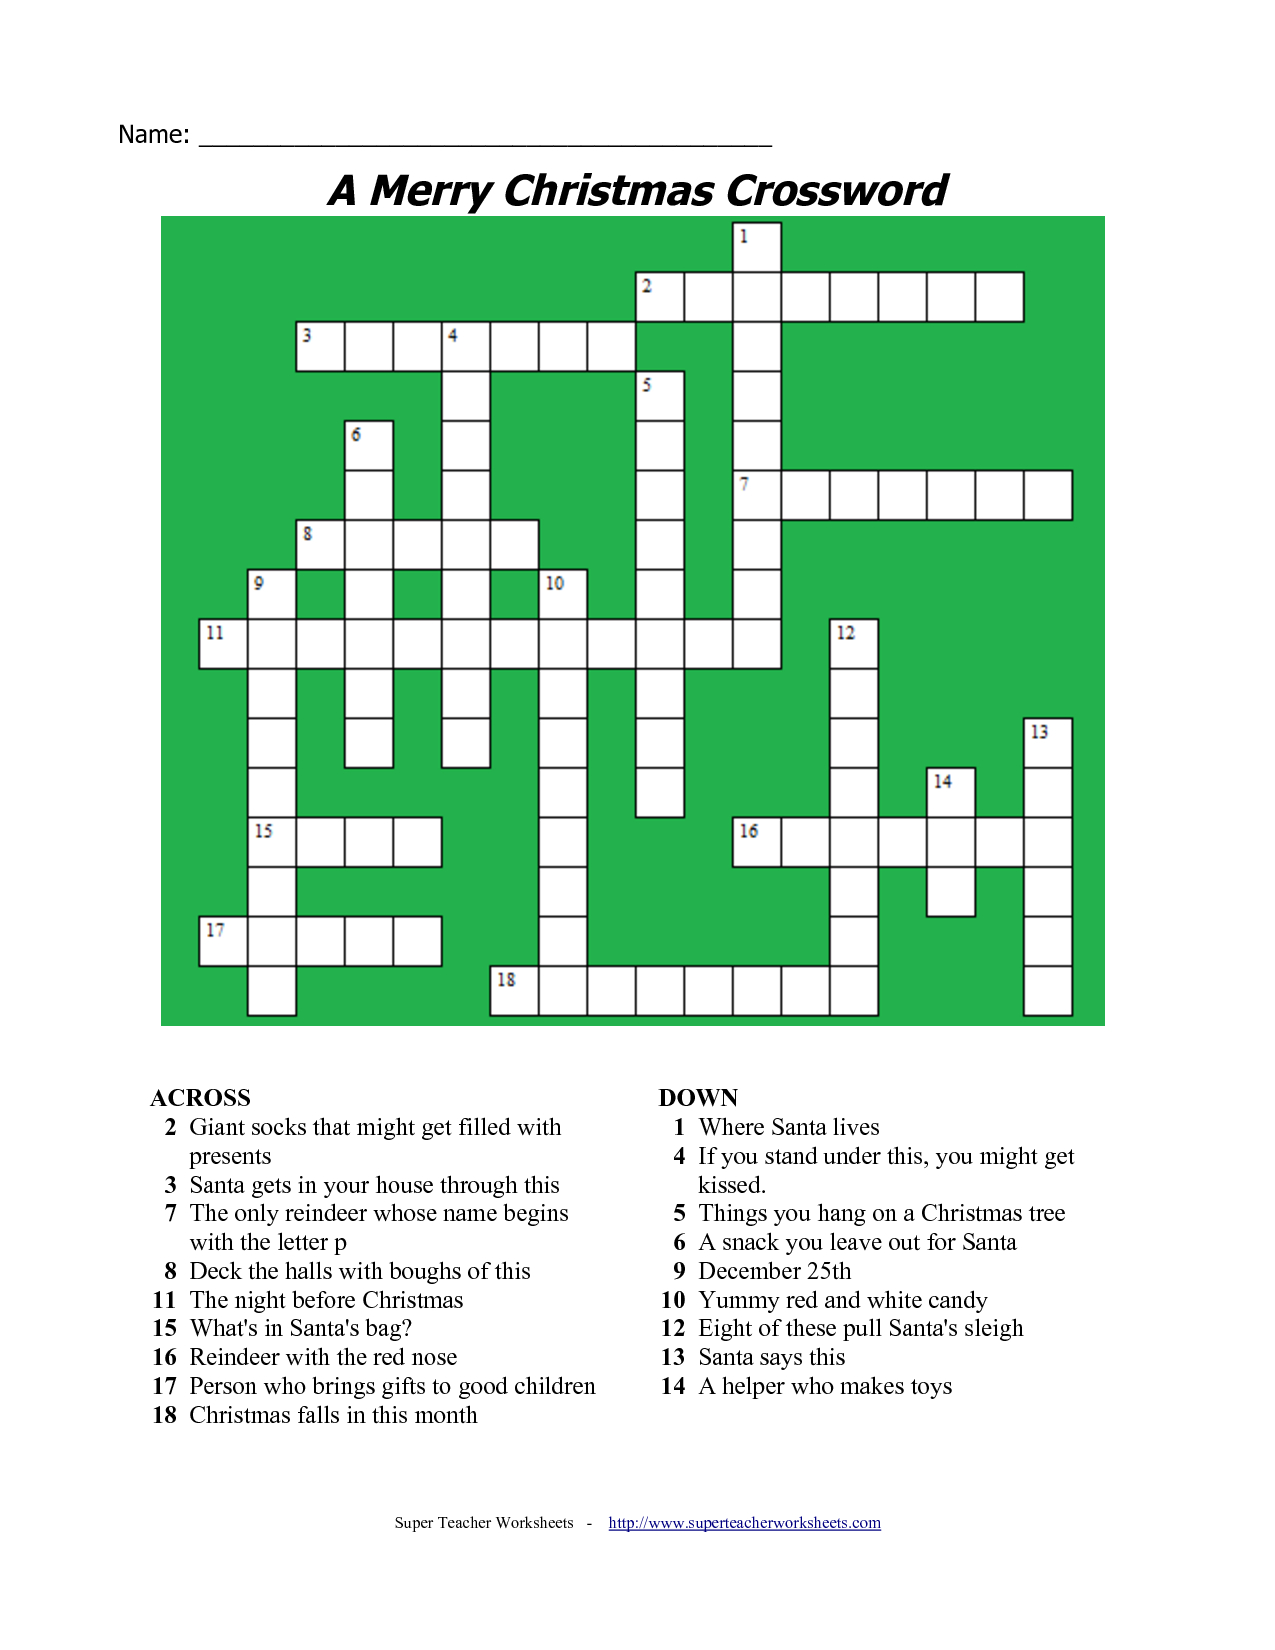 20 Fun Printable Christmas Crossword Puzzles | Kittybabylove - Printable Xmas Puzzles